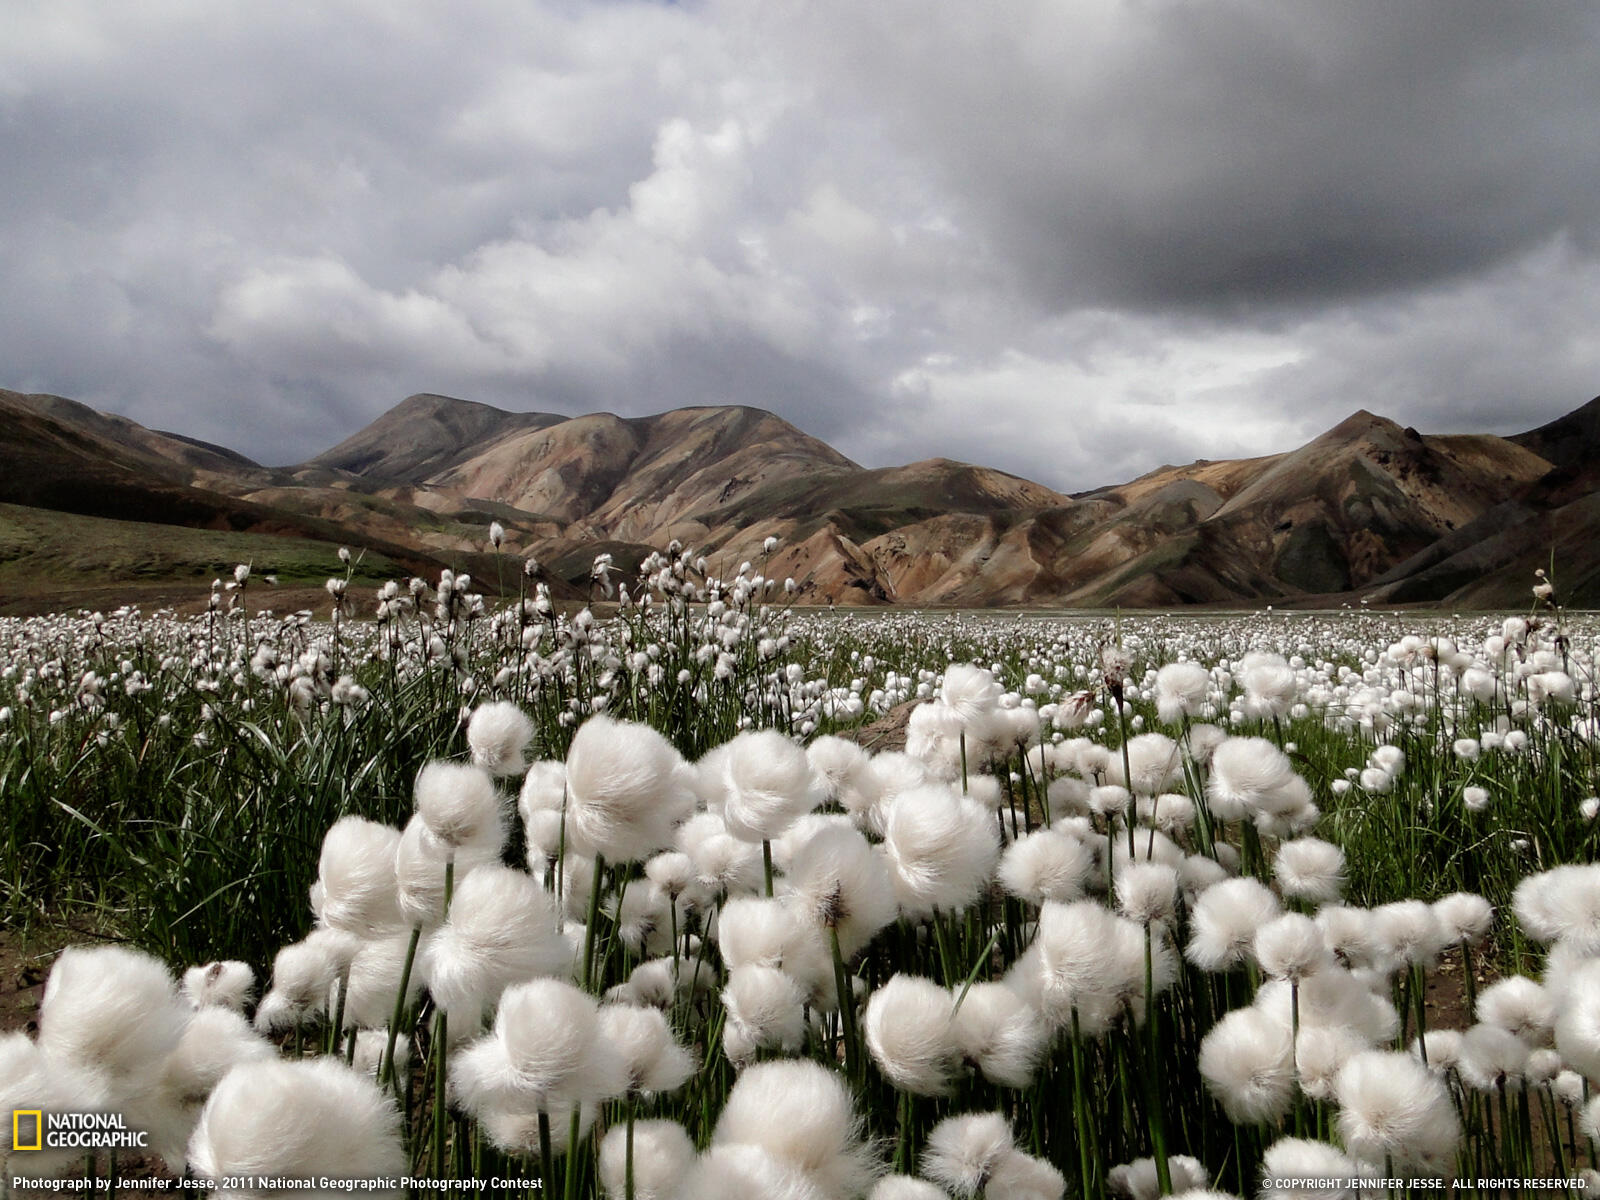 A Beautiful Field of Cotton Grass in Iceland http://t.co/rOc48U6ehB